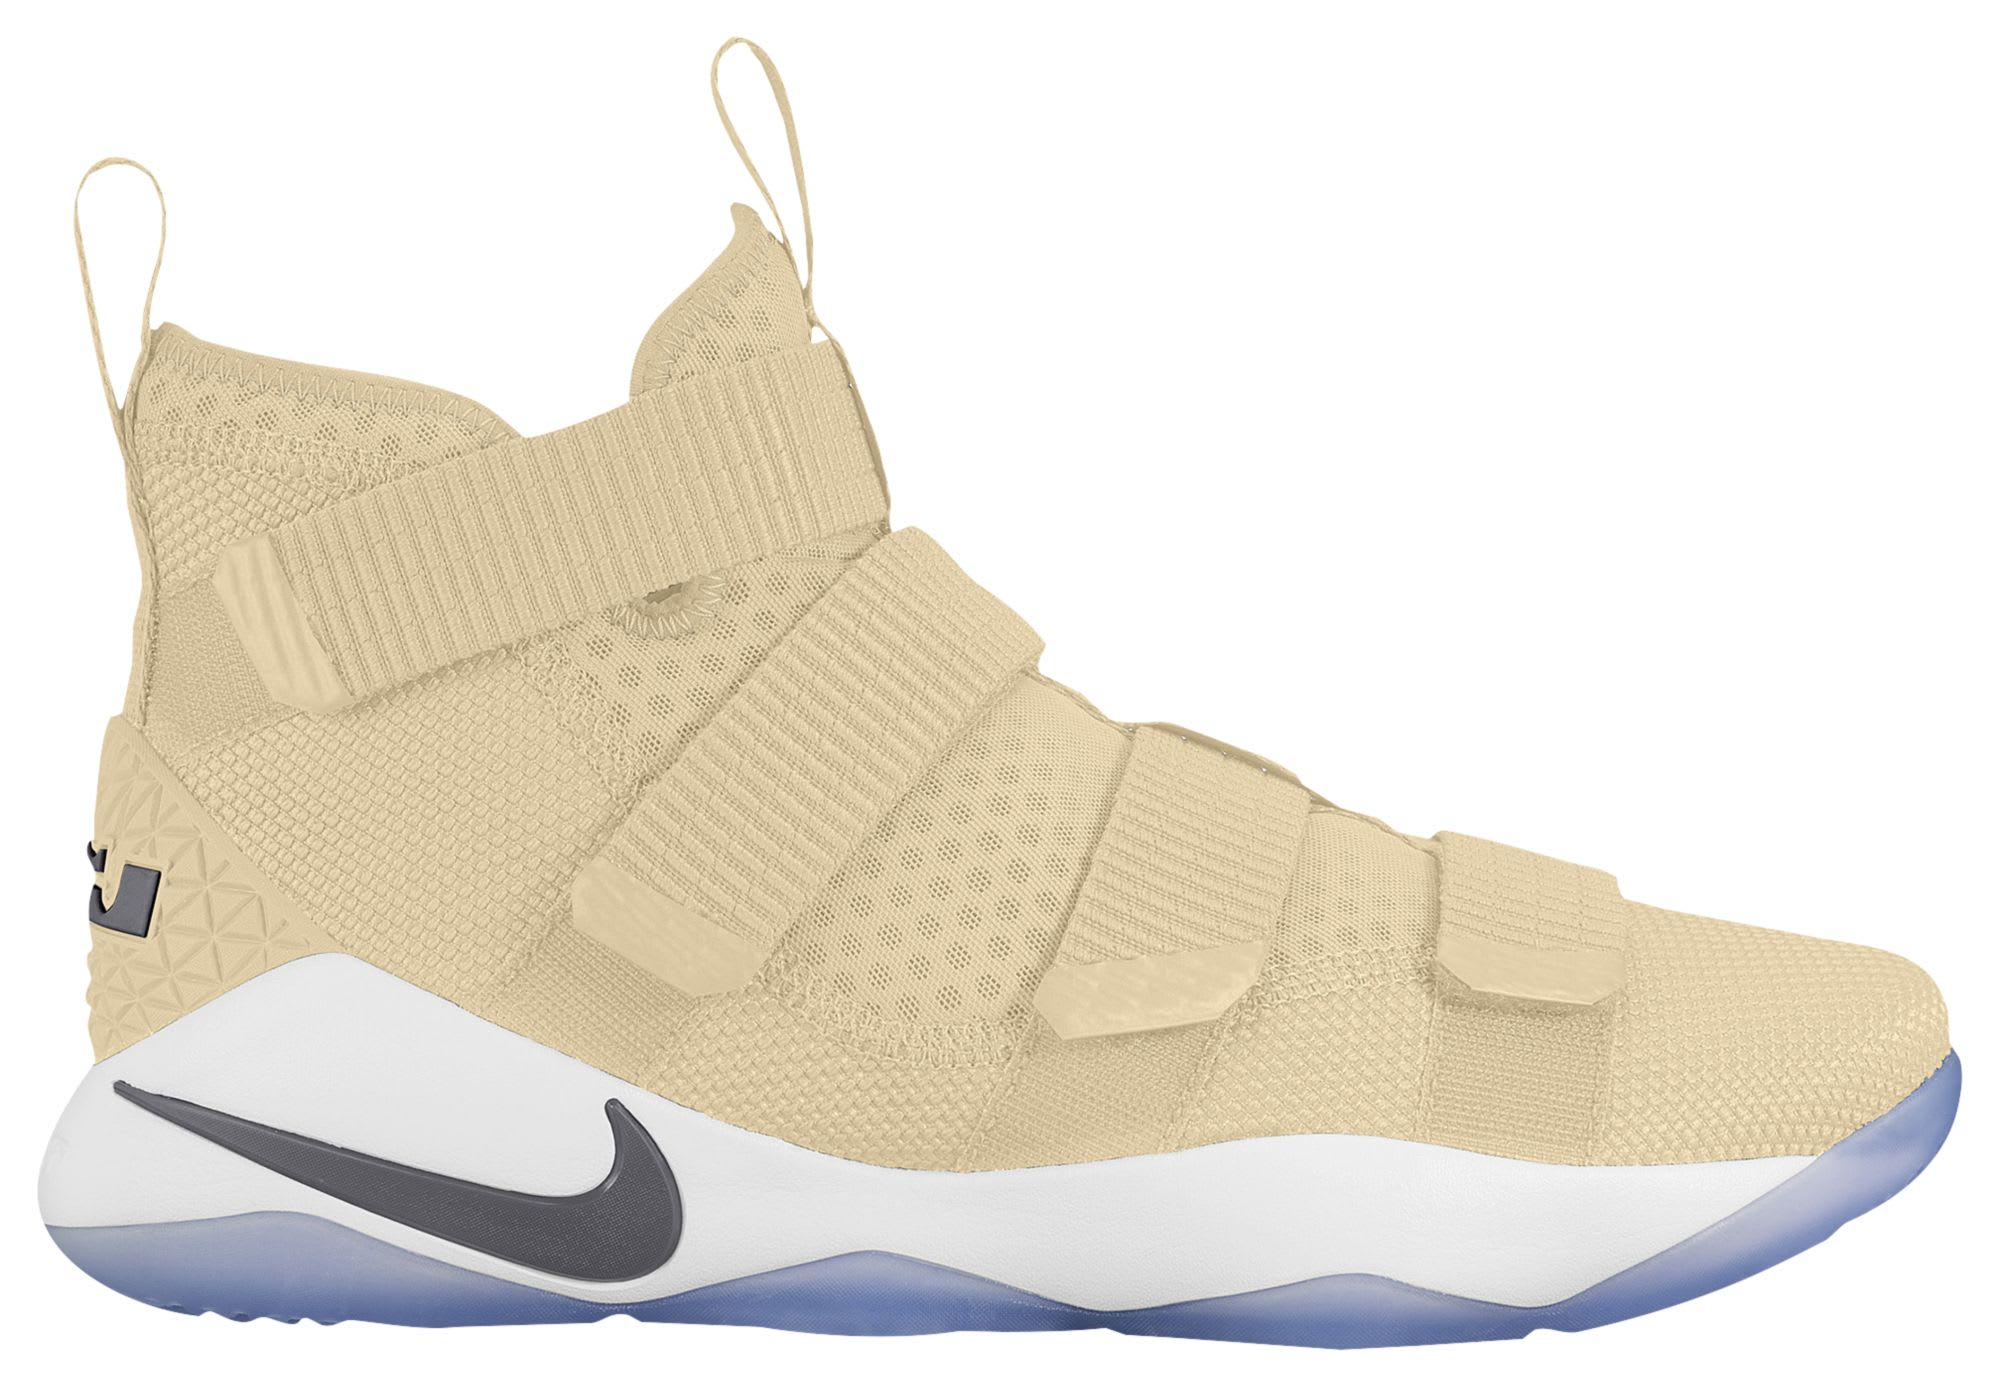 Nike LeBron Soldier 11 TB Team Gold